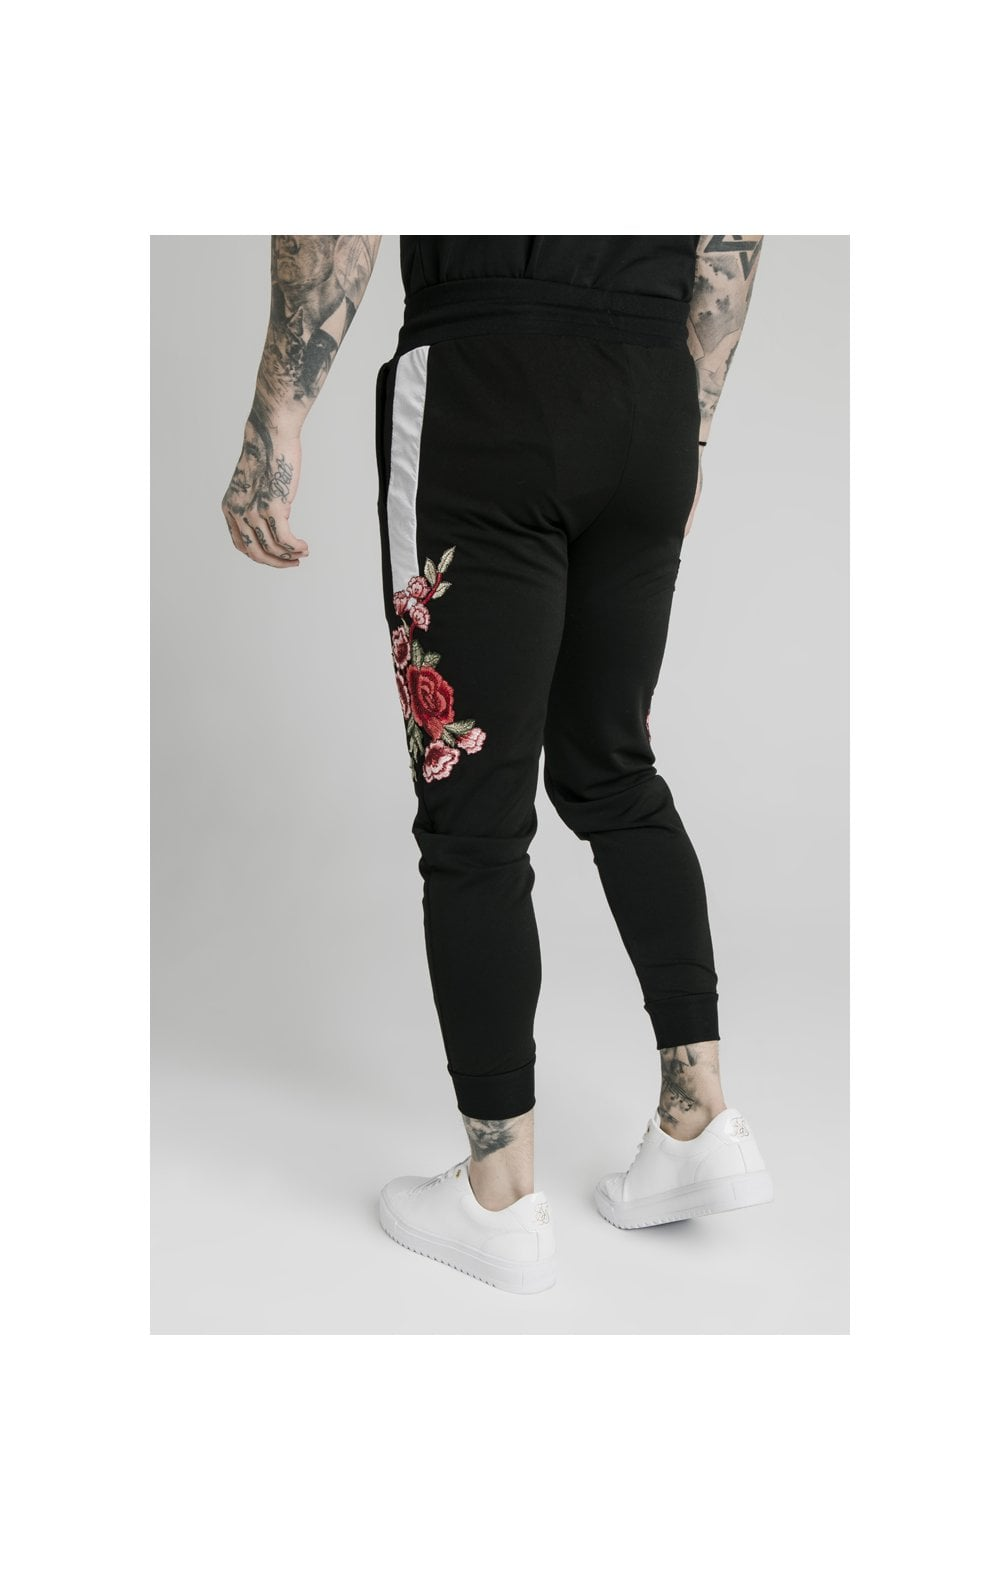 SikSilk Appliqu�� Panelled Fitted Joggers - Black (7)